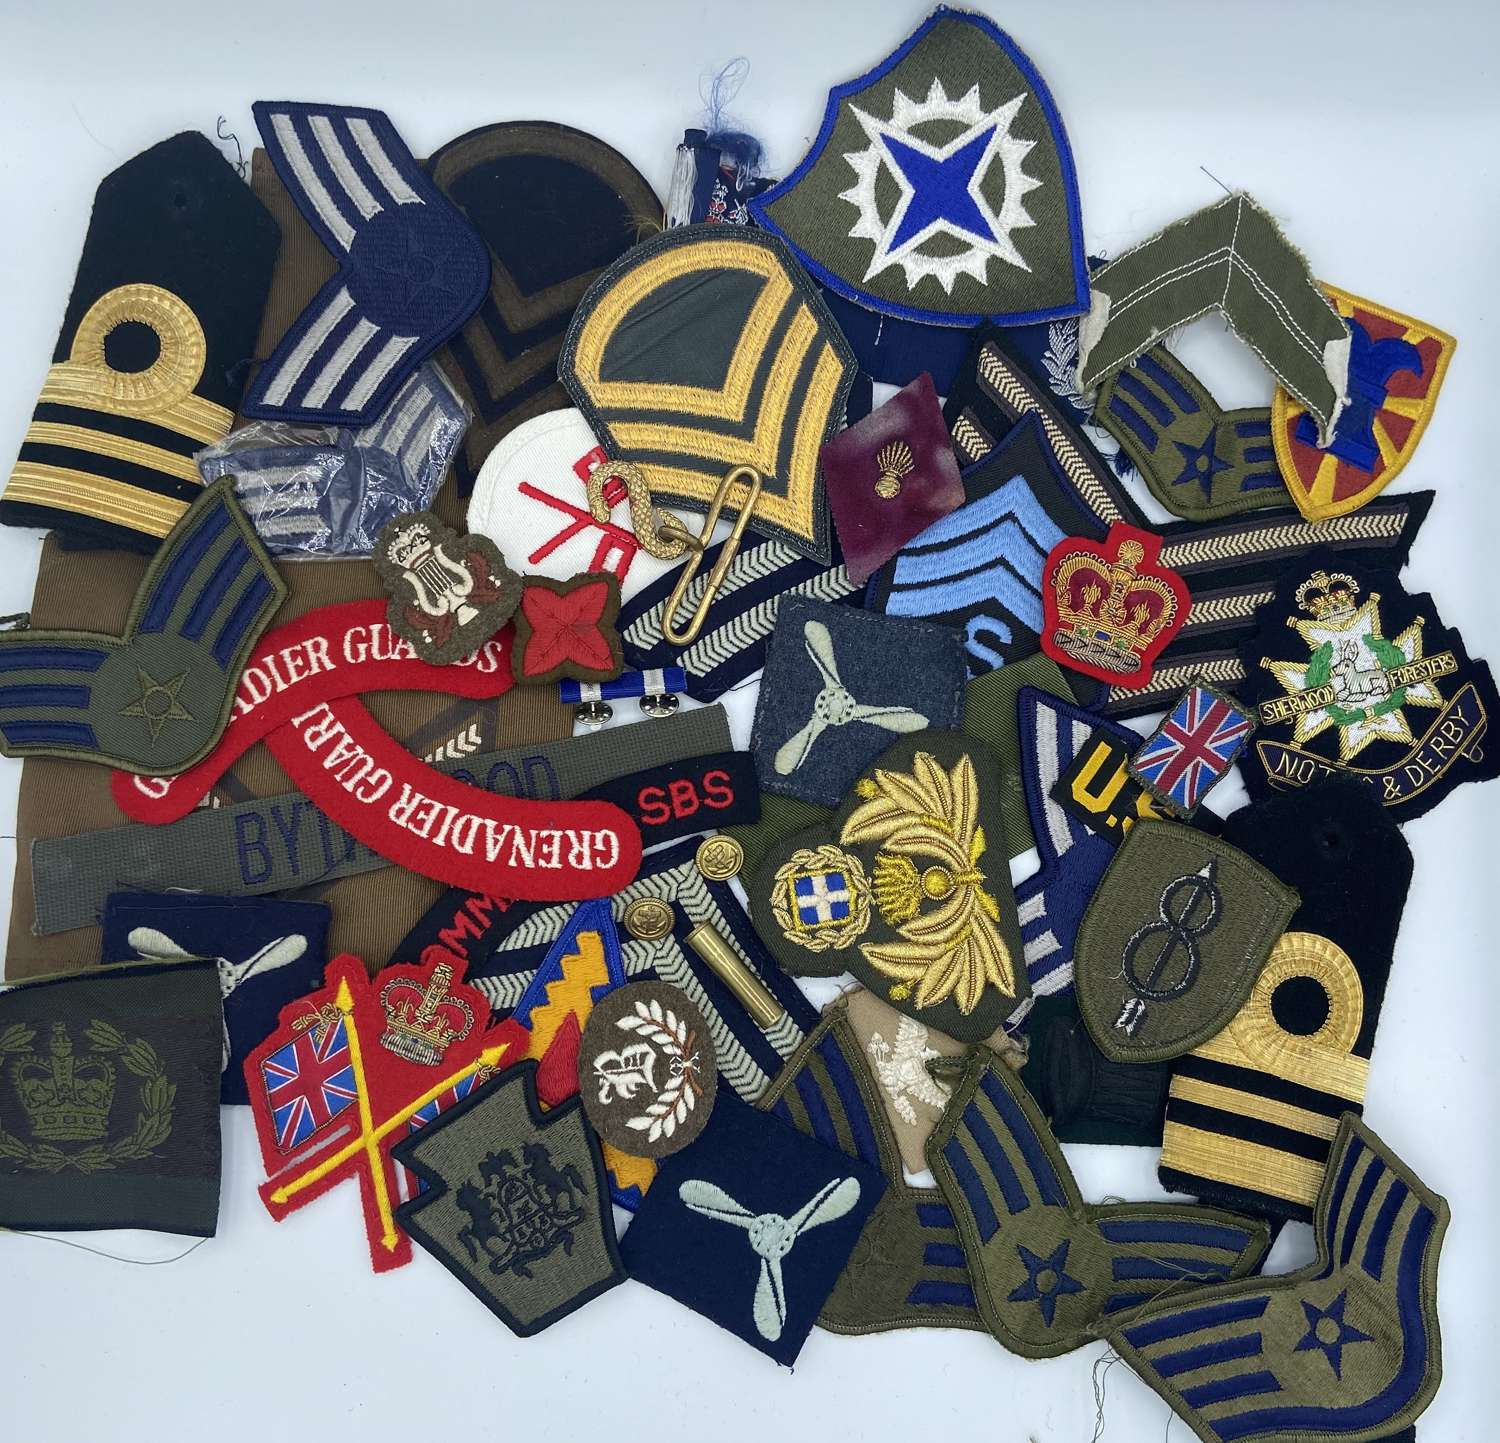 Joblot Of Post WW2 British Army And U.S Army Patches Stripes Etc